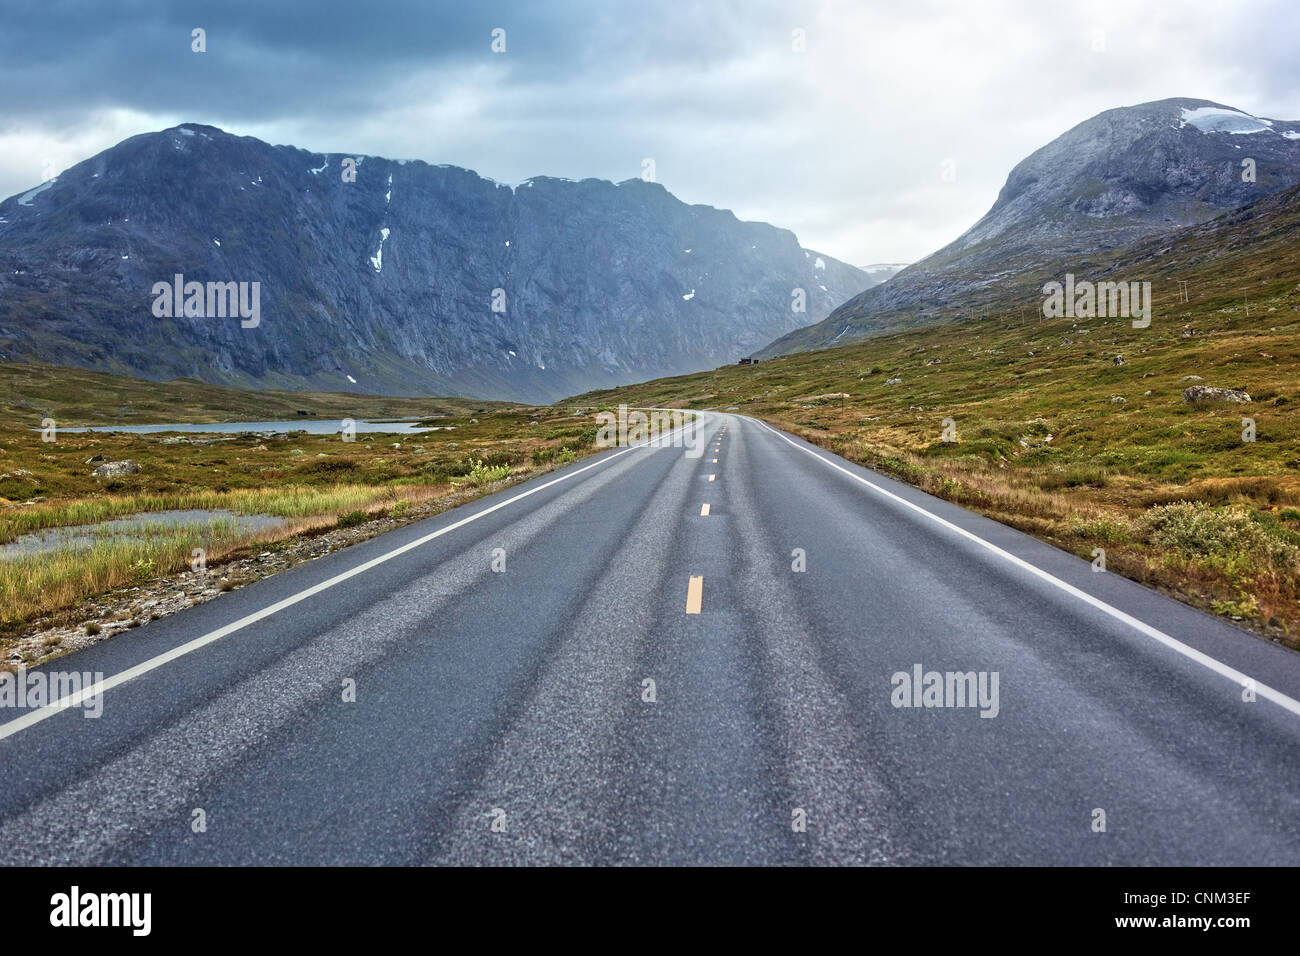 Road perspective in overcast weather. Norway landscape. - Stock Image